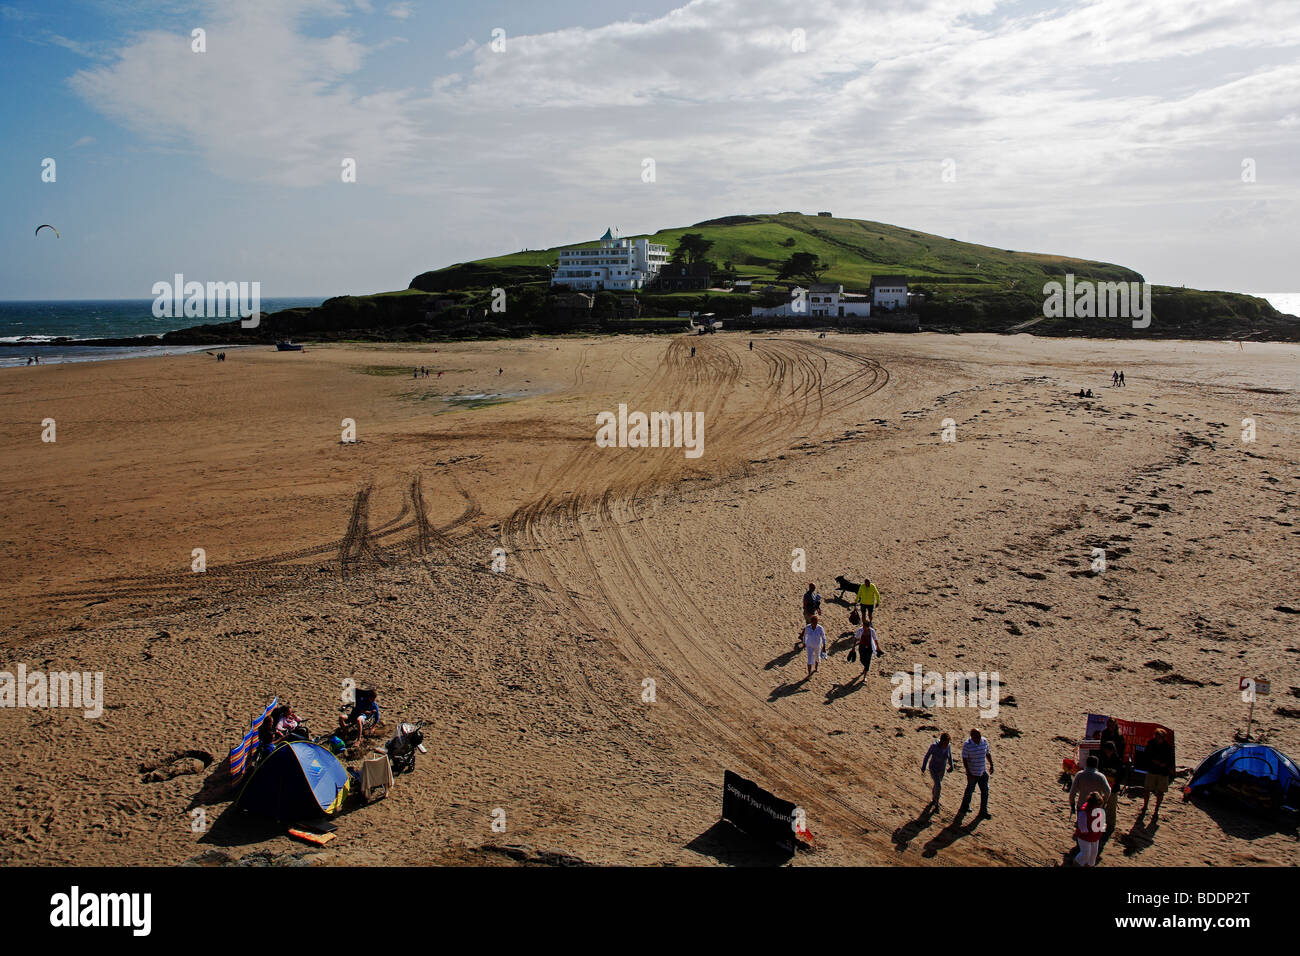 2581. Burgh Island, Bigbury-on-Sea, Devon - Stock Image